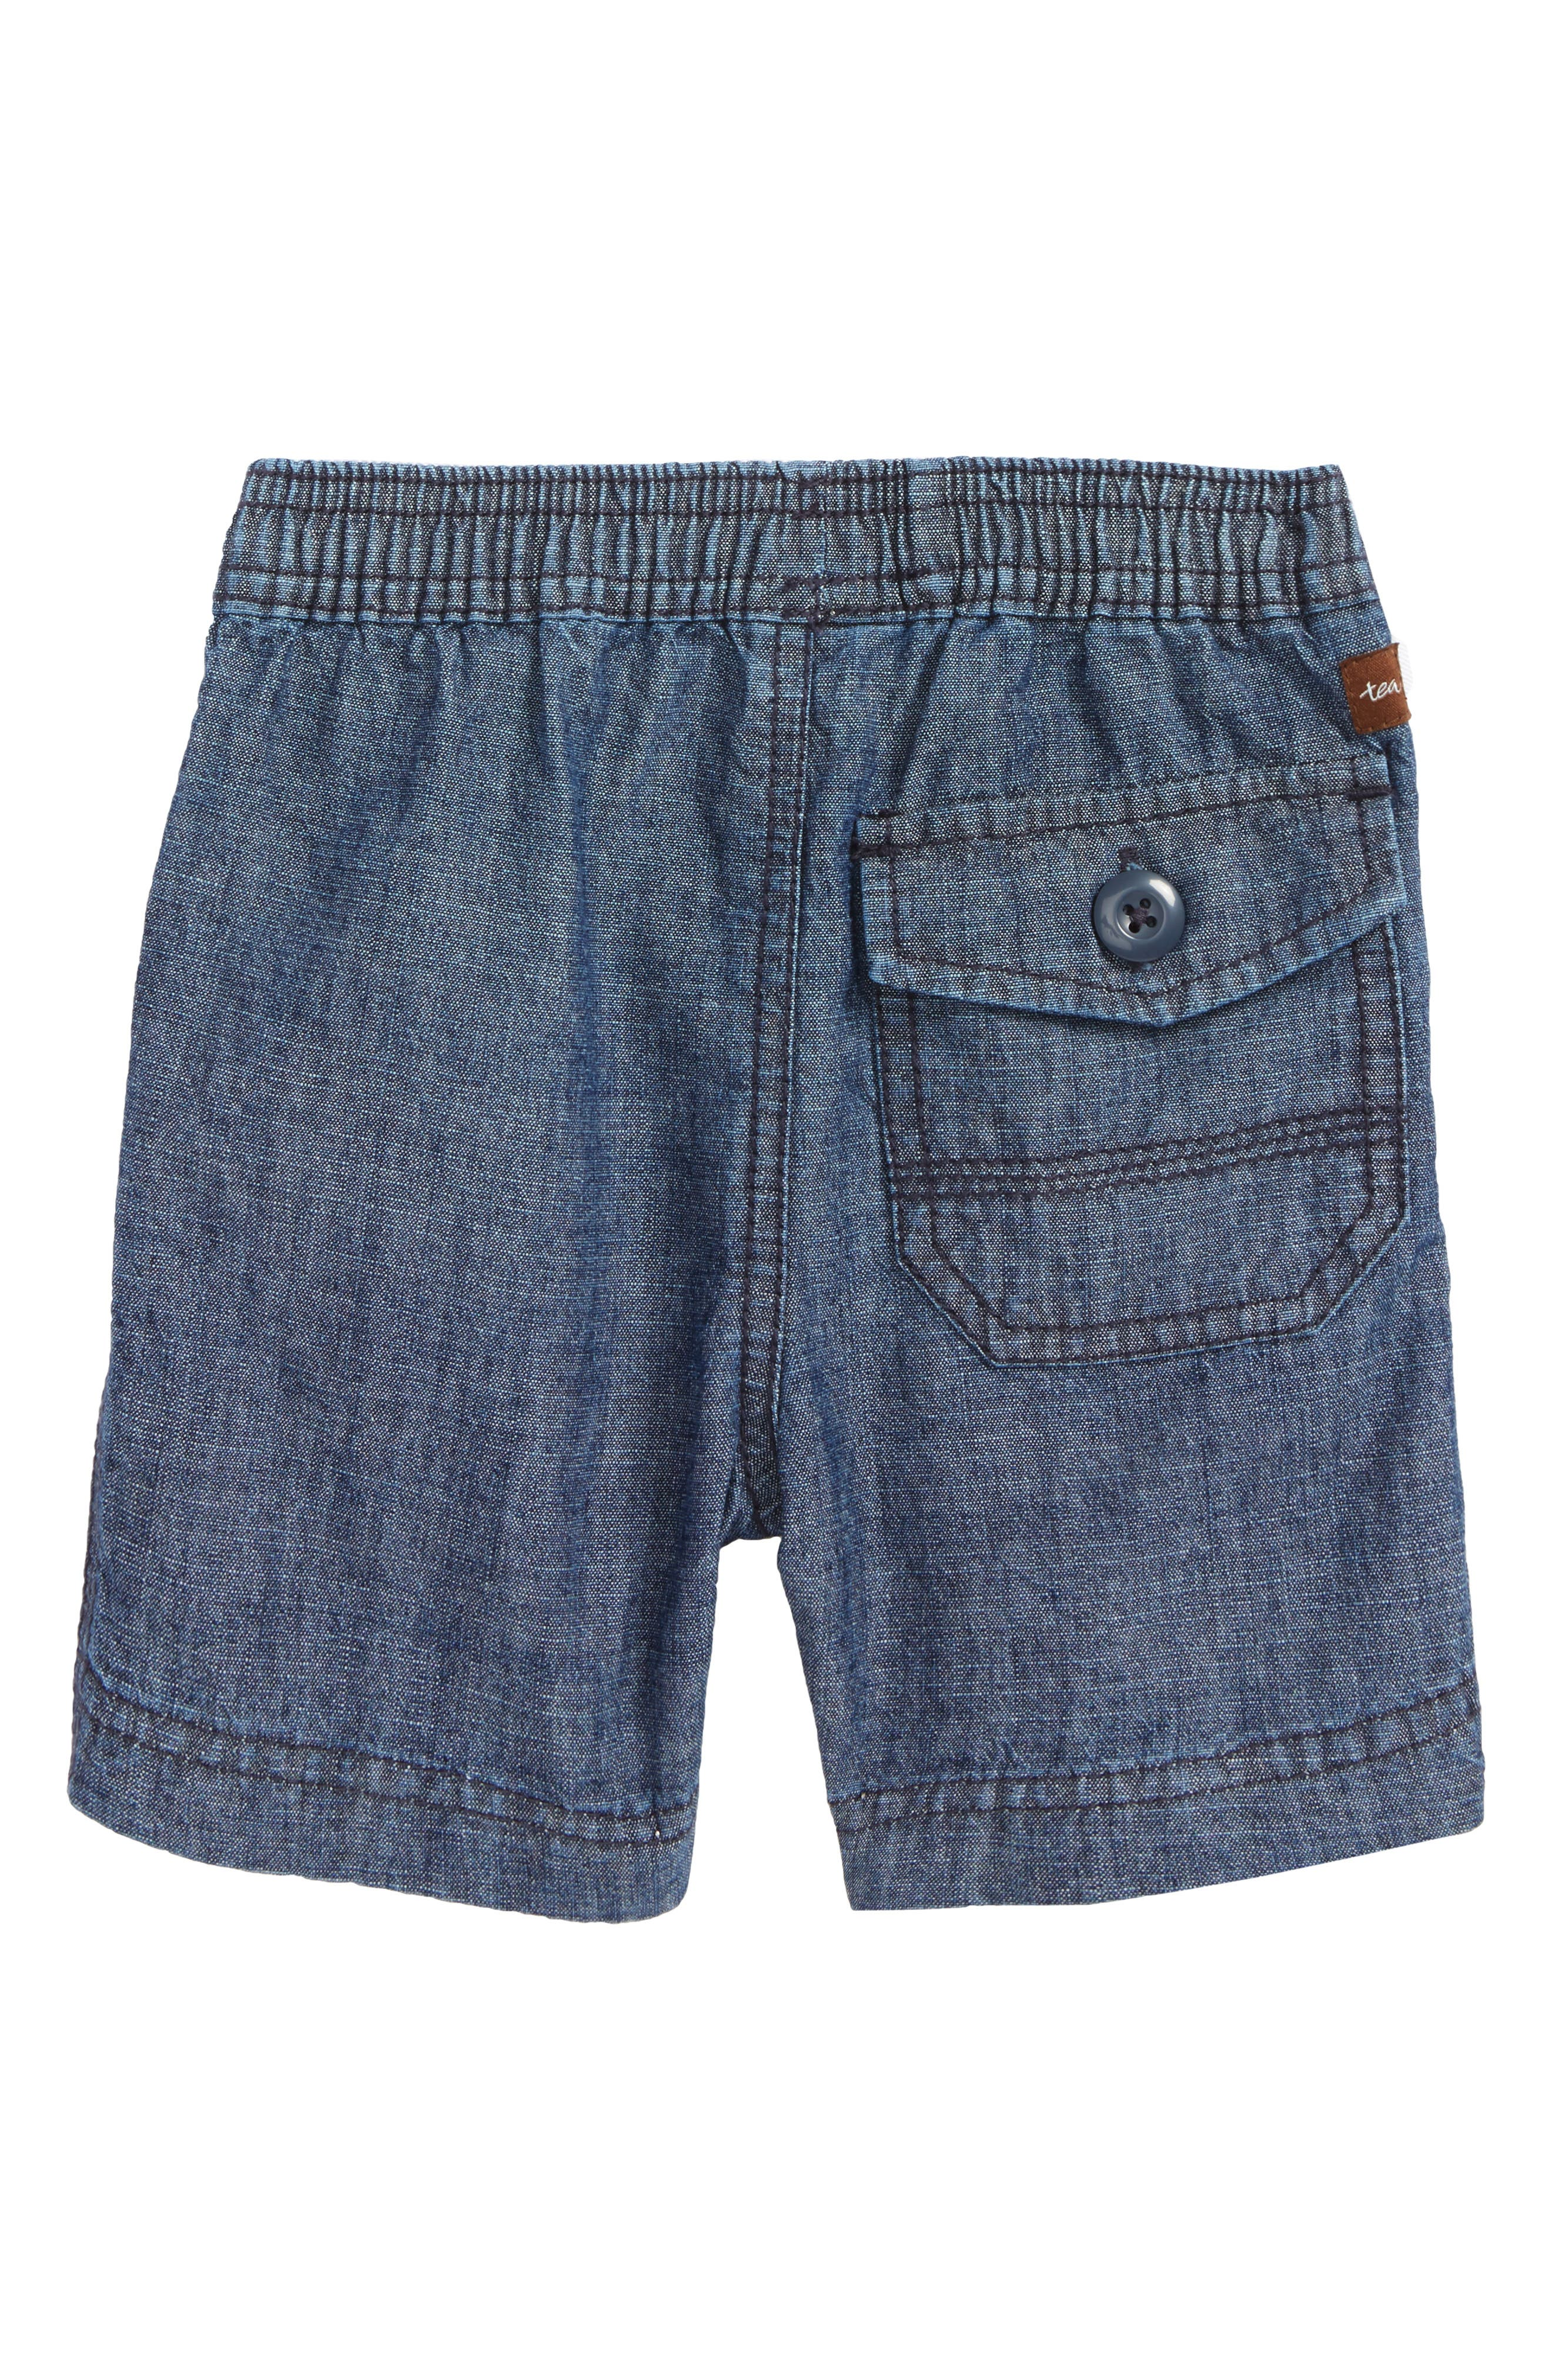 Easy Does It Chambray Shorts,                             Alternate thumbnail 2, color,                             410